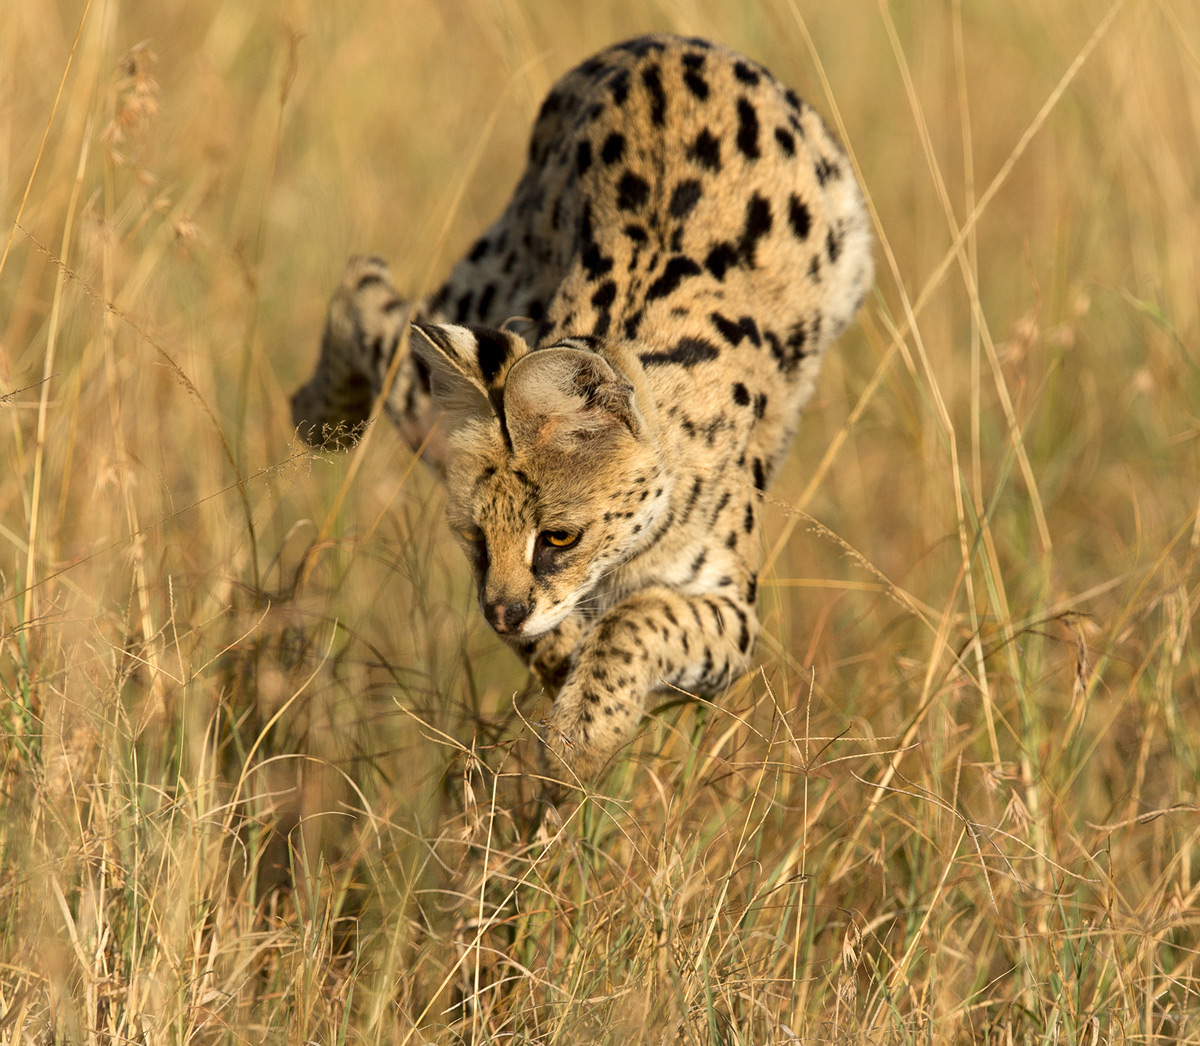 A serval pounces on its prey in Maasai Mara National Reserve, Kenya © Derek Howes